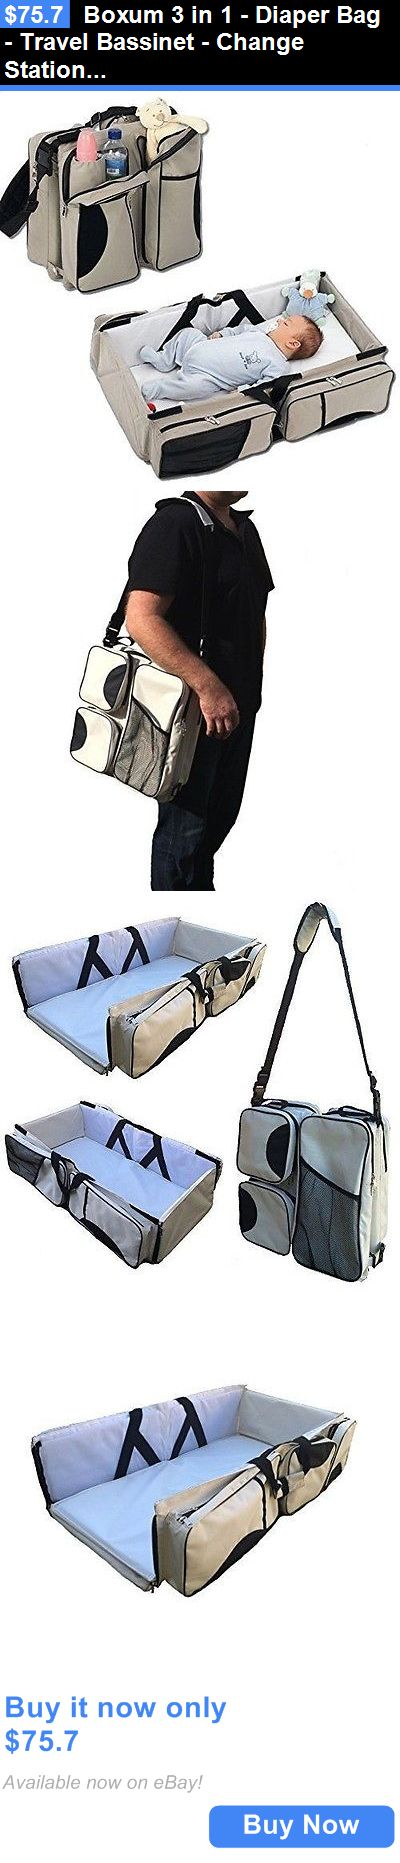 baby and kid stuff: Boxum 3 In 1 - Diaper Bag - Travel Bassinet - Change Station - (Cream) - ... New BUY IT NOW ONLY: $75.7